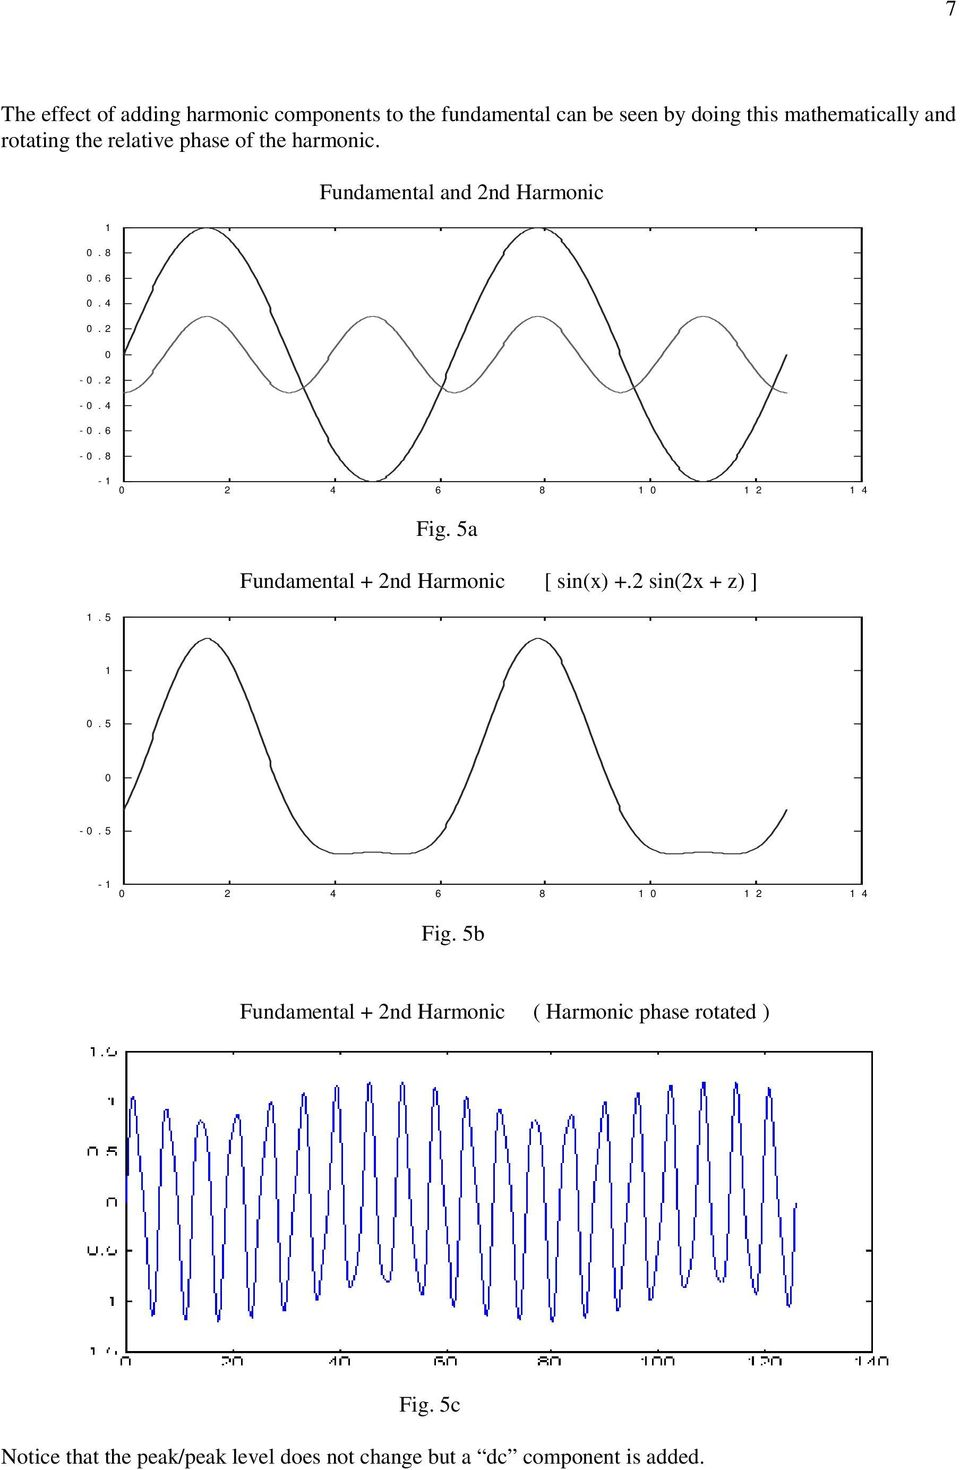 8-1 0 2 4 6 8 1 0 1 2 1 4 Fig. 5a Fundamental + 2nd Harmonic [ sin(x) +.2 sin(2x + z) ] 1. 5 1 0. 5 0-0.